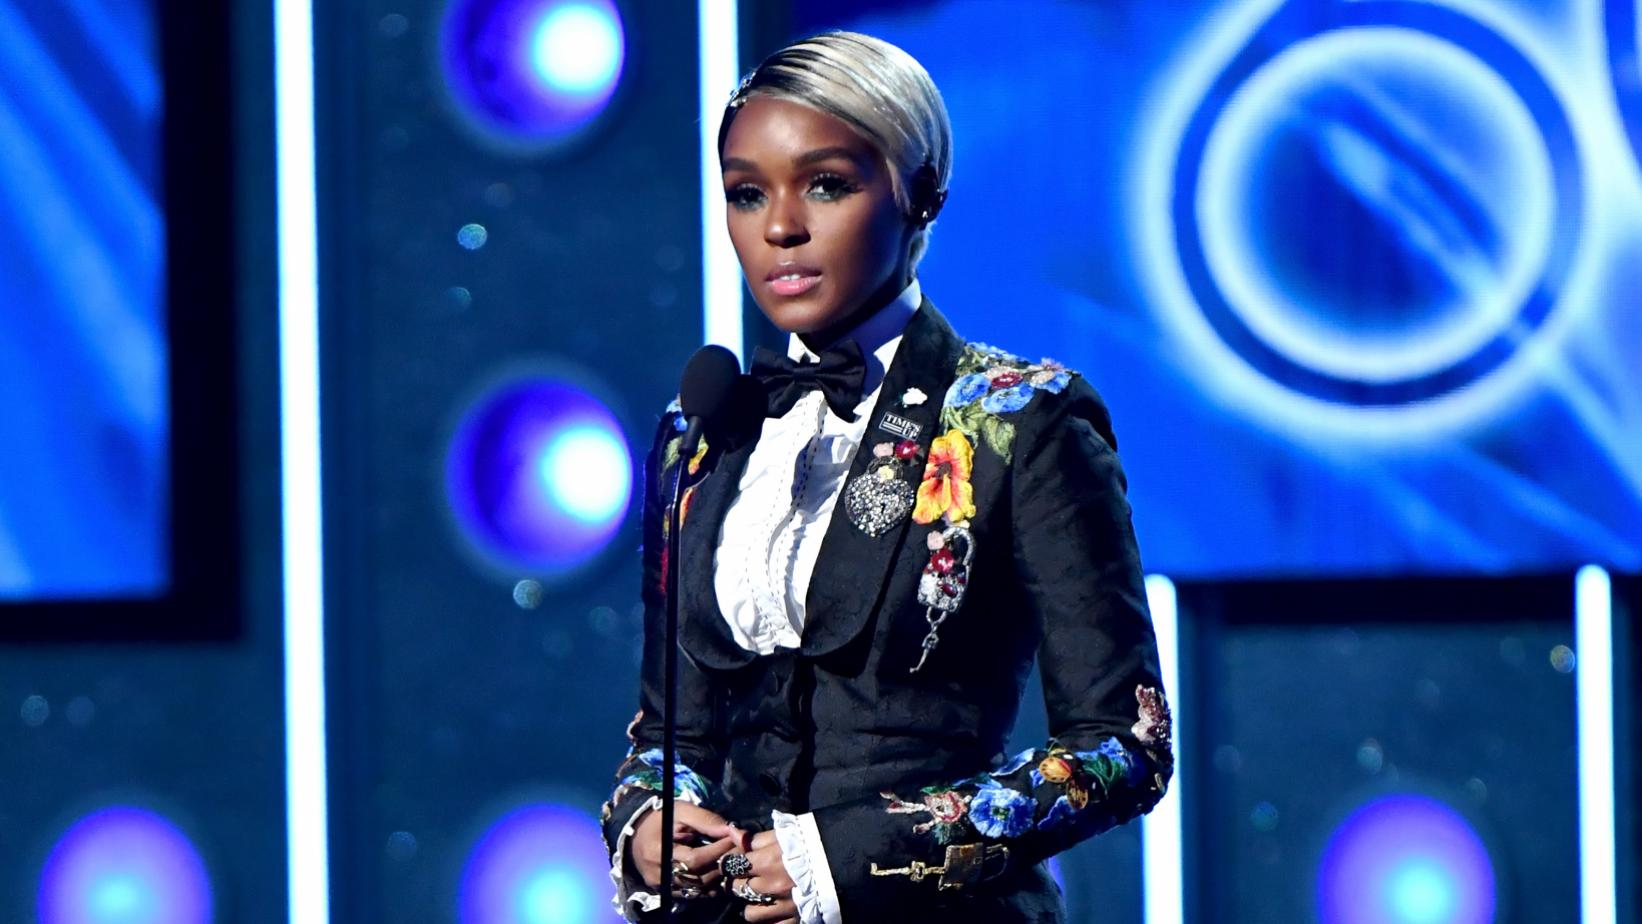 Janelle Monáe at the GRAMMYs